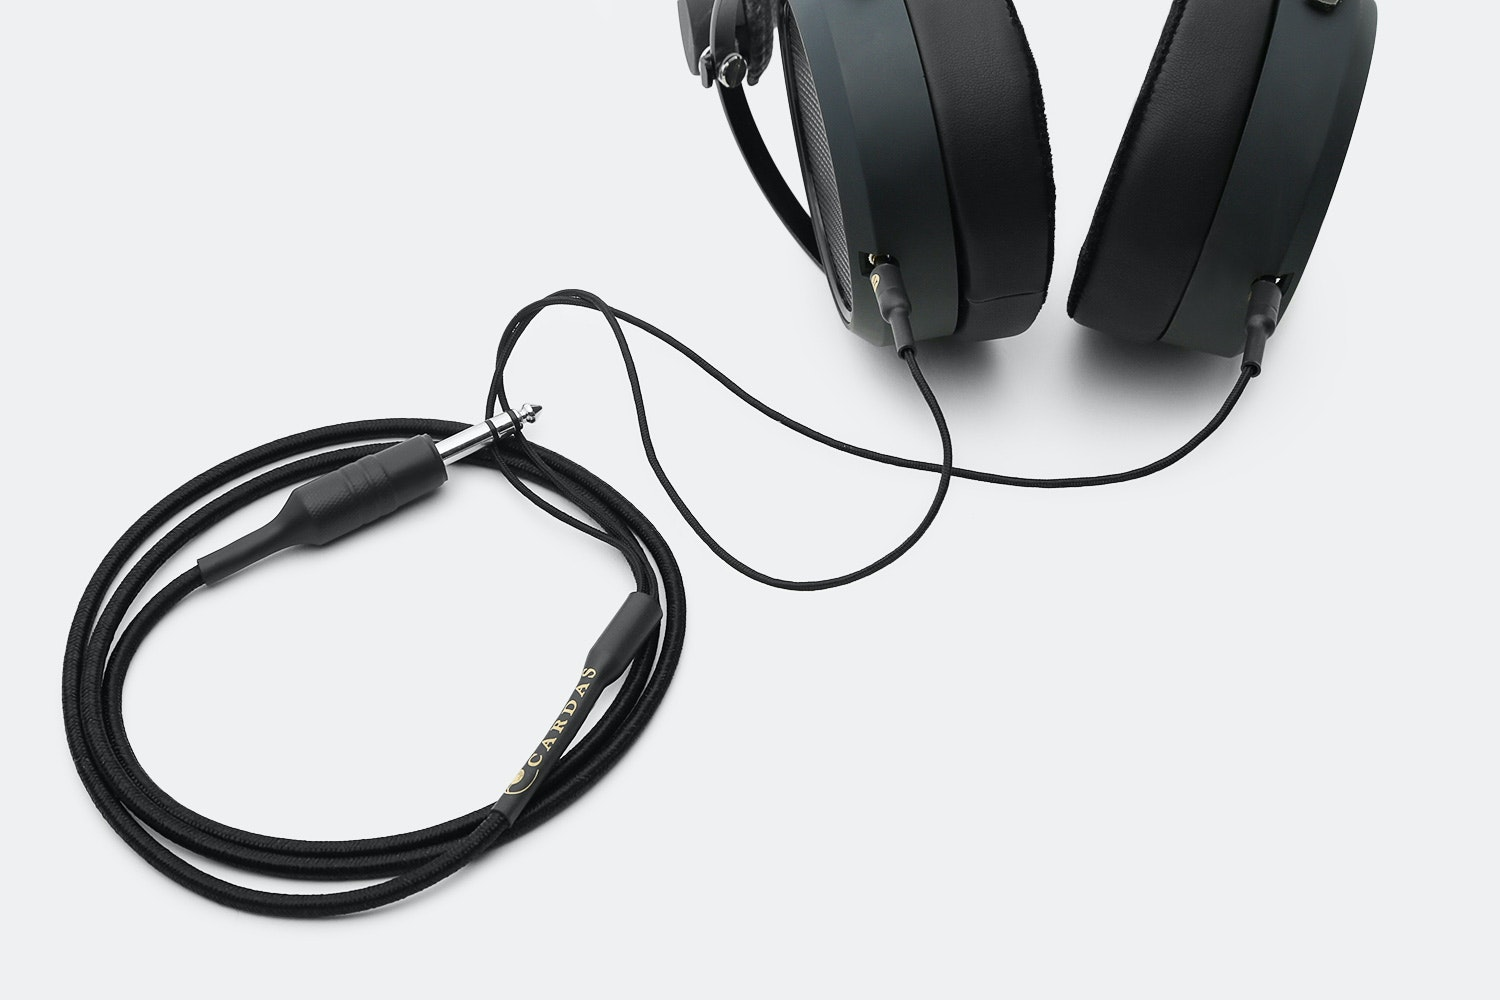 Cardas Premium Clear Light Headphone Cables